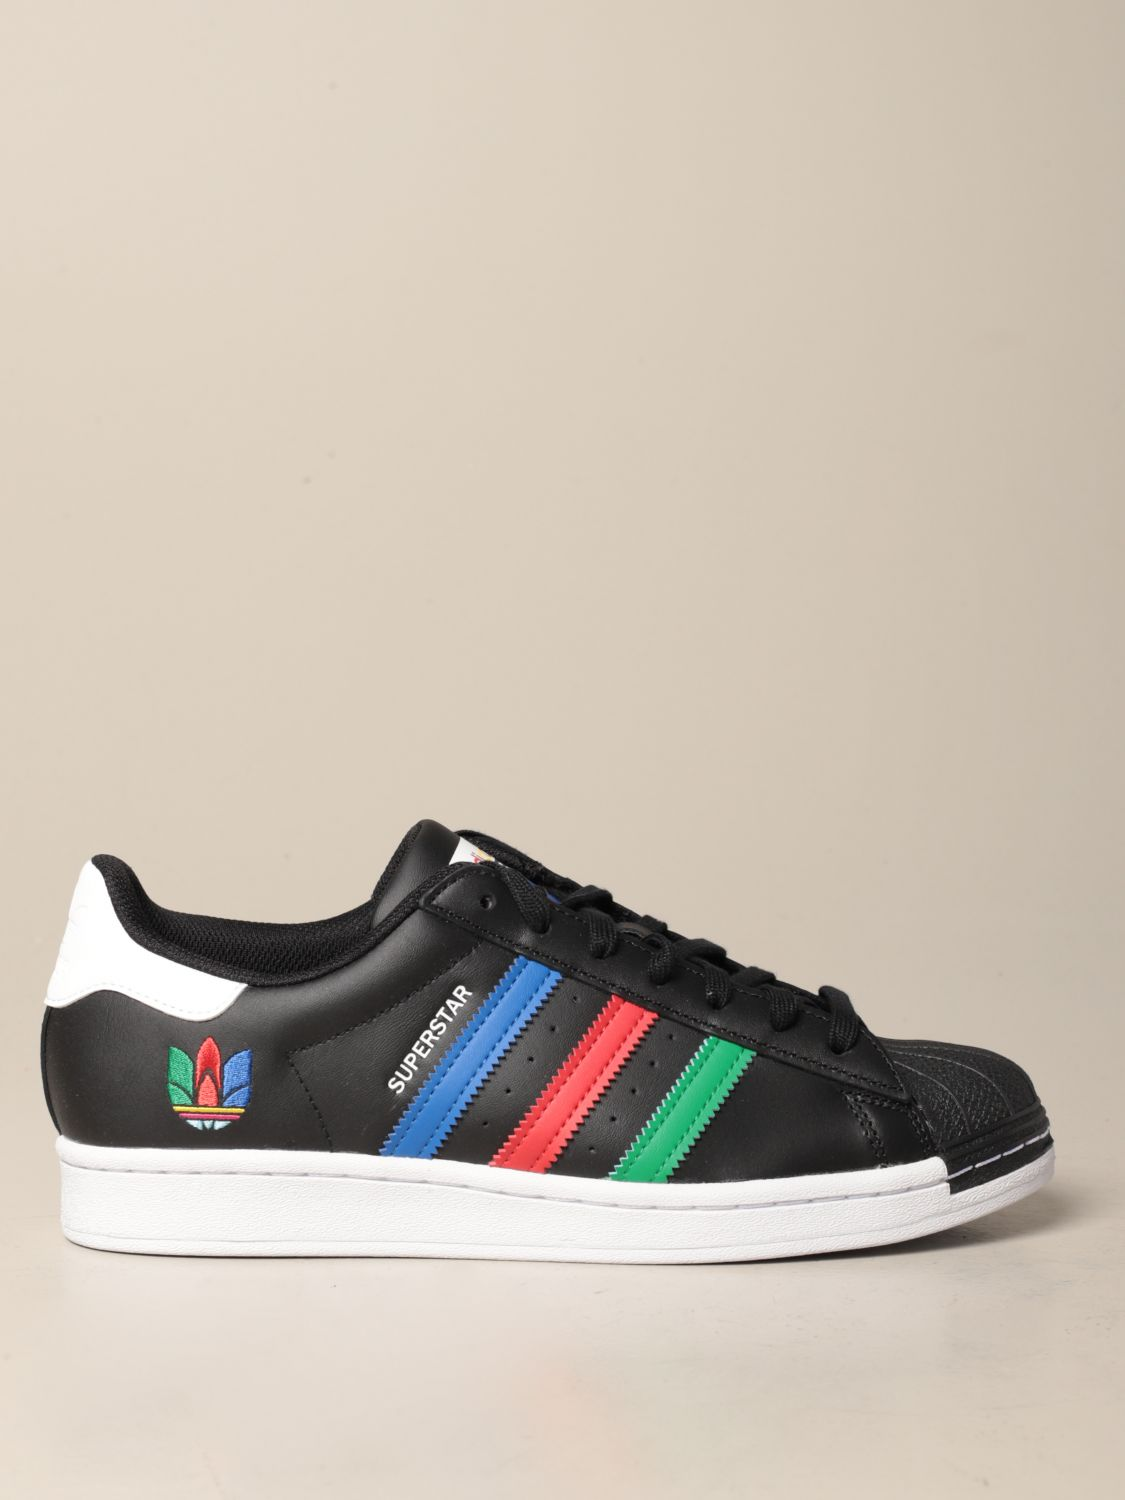 El aparato plataforma Enjuiciar  Adidas Originals Superstar sneakers in leather with multicolor clover |  Sneakers Adidas Originals Men Black | Sneakers Adidas Originals FU9520  Giglio EN